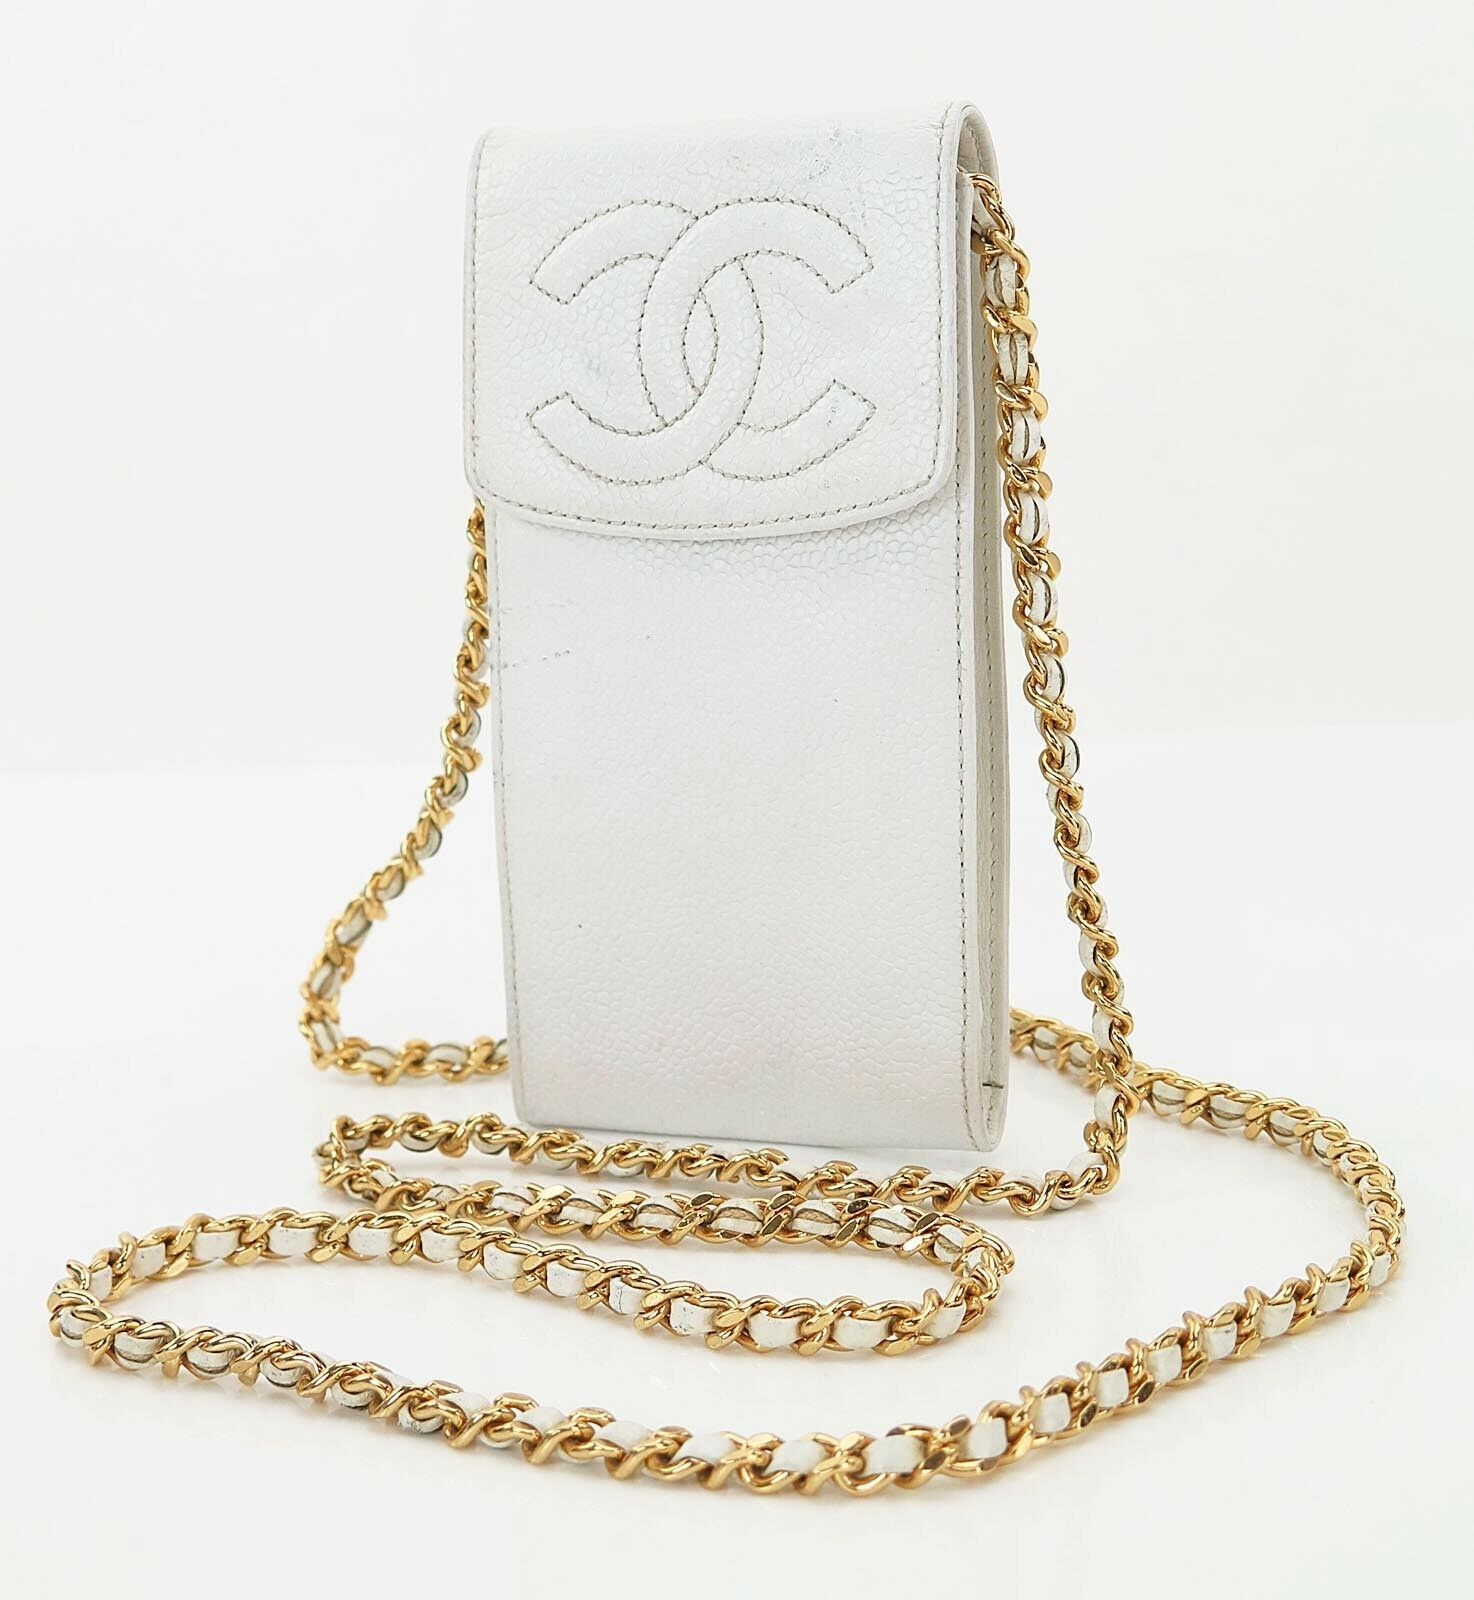 Authentic CHANEL White Caviar Leather Gold Chain Shoulder Bag Pouch #27333